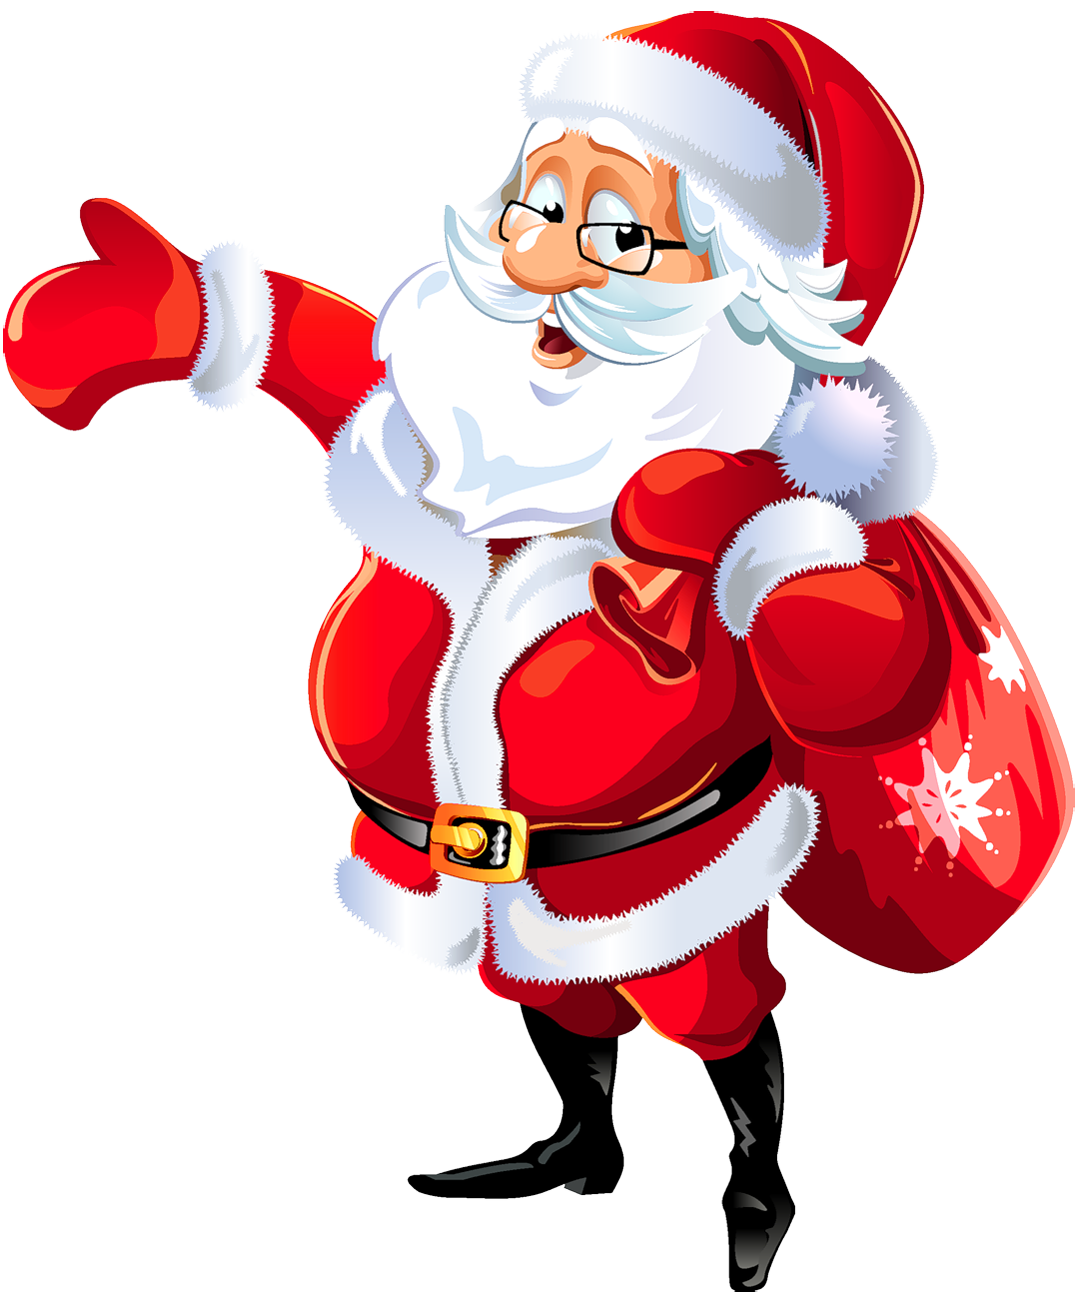 Christmas Santa Claus HD PNG Images.